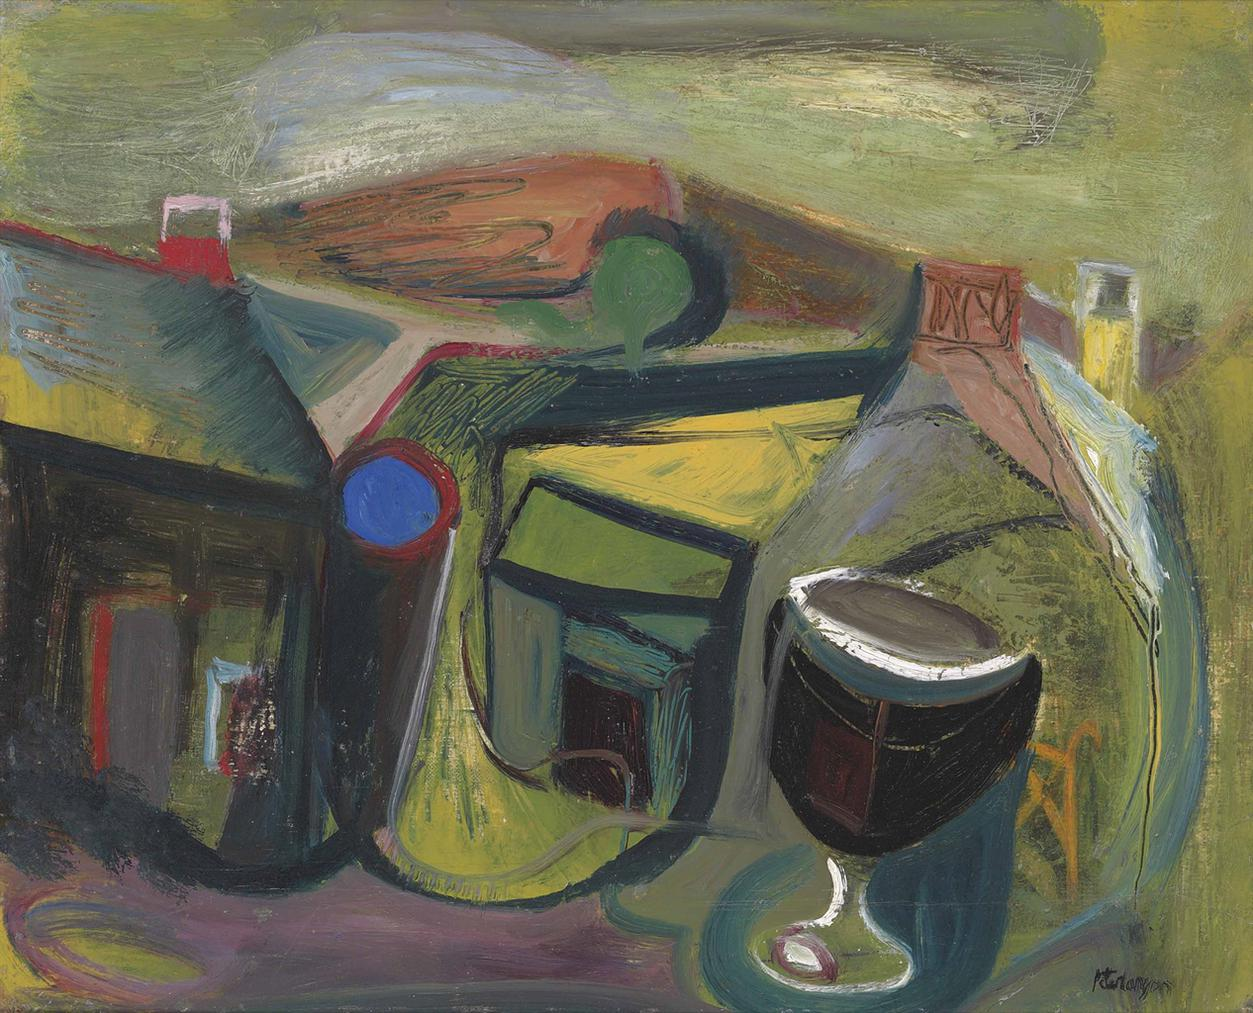 Peter Lanyon-Landscape And Cup (Annunciation)-1946